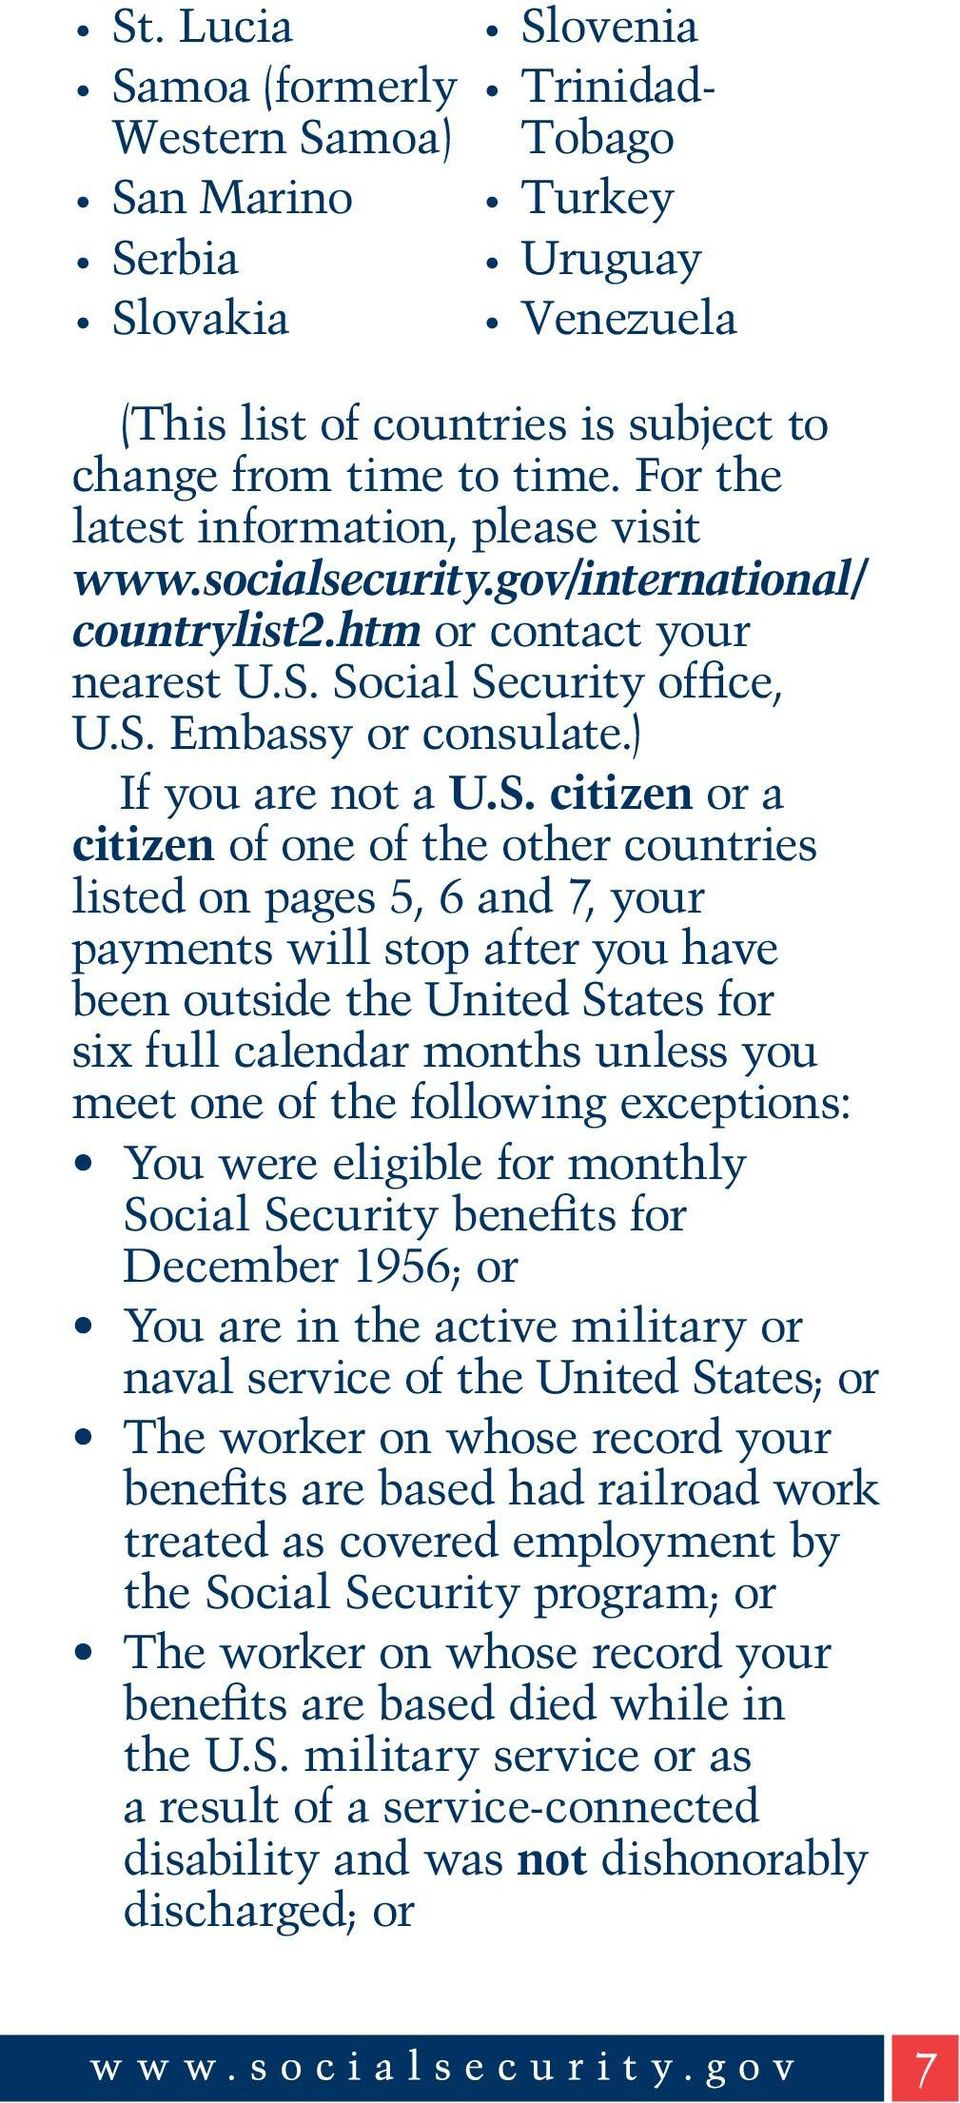 Social Security office, U.S. Embassy or consulate.) If you are not a U.S. citizen or a citizen of one of the other countries listed on pages 5, 6 and 7, your payments will stop after you have been